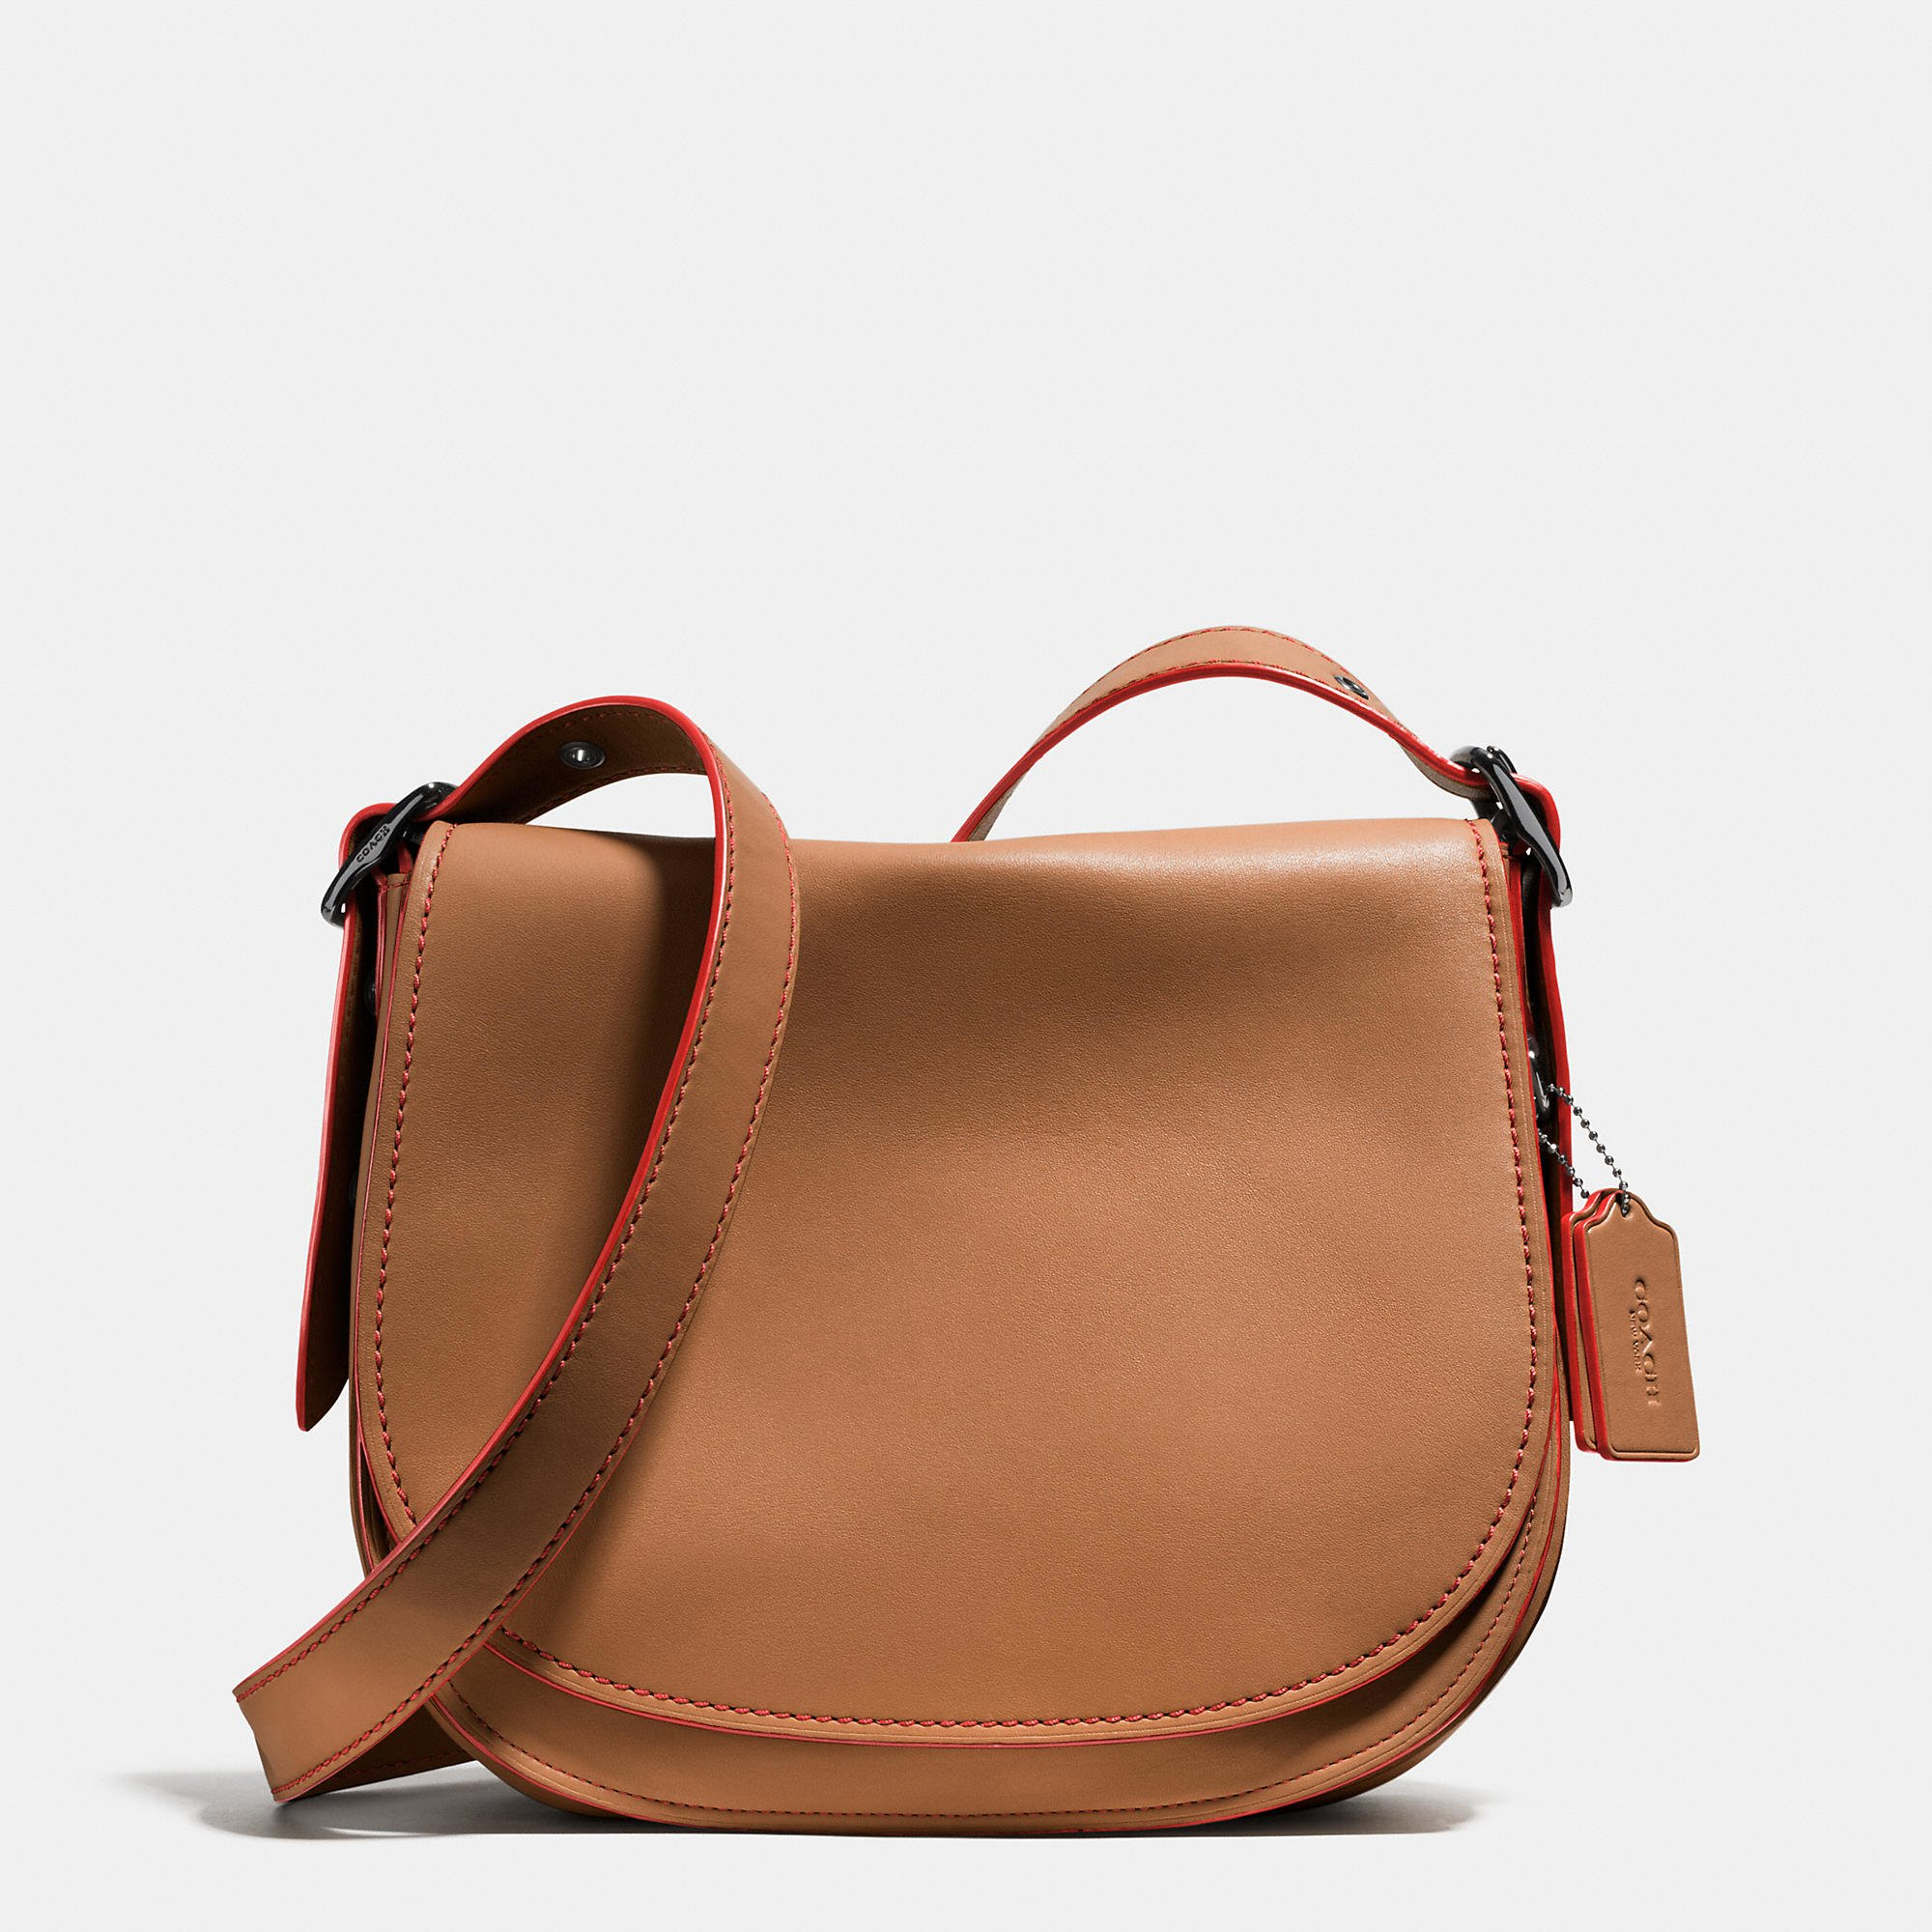 ccf17e1ef817 Lyst - COACH Saddle Bag In Glovetanned Leather in Brown